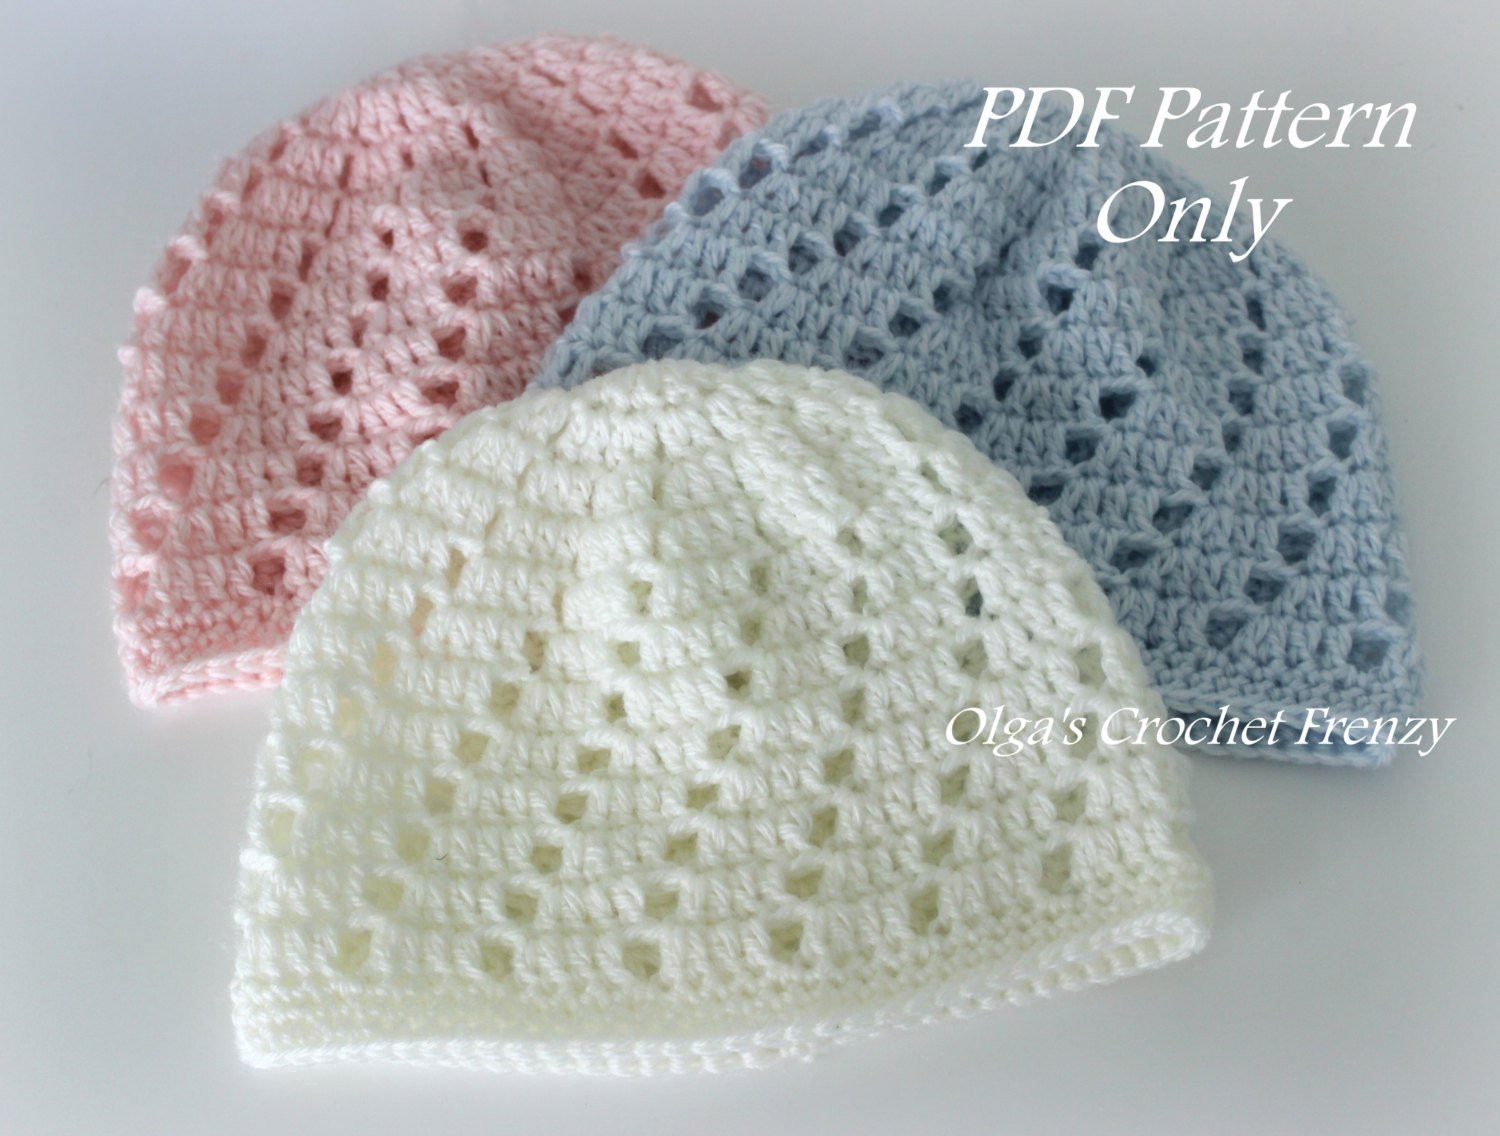 Free Crochet Baby Hat Patterns Unique Baby Beanie Hat Crochet Pattern Beginner Skill Level Size Of Adorable 48 Pics Free Crochet Baby Hat Patterns